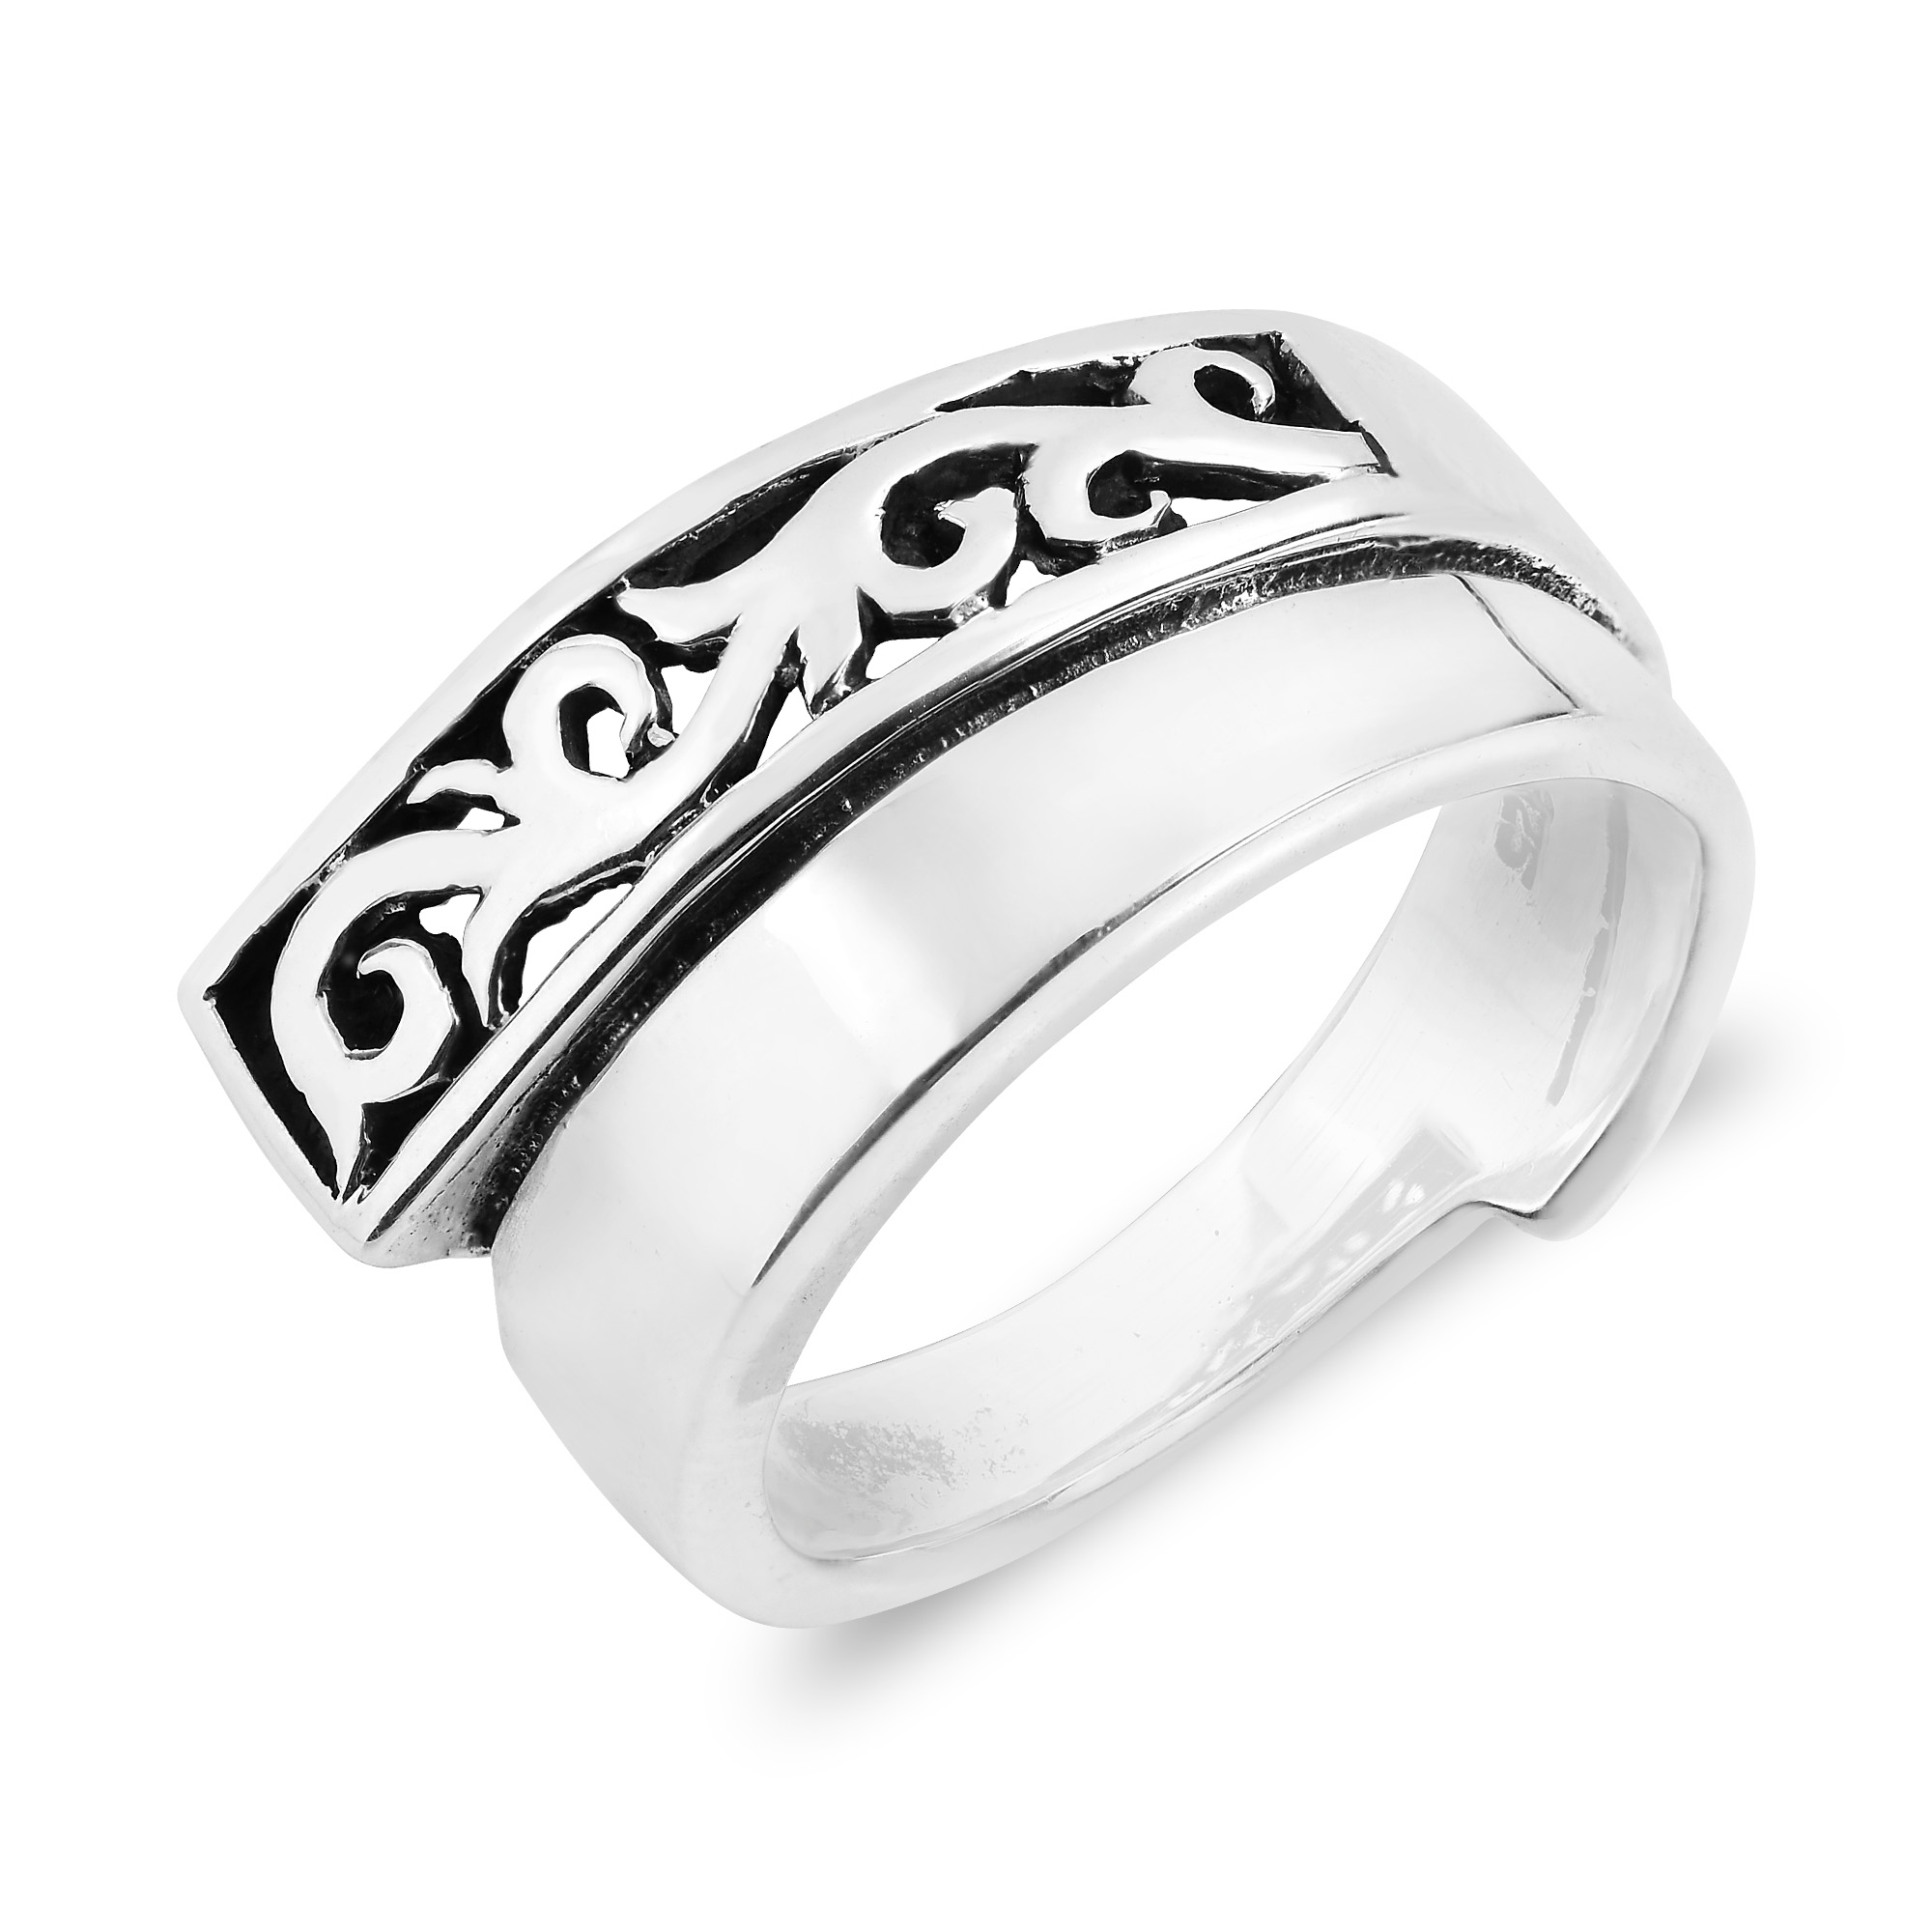 bands ring onewaystyle band plain left from layer filigree